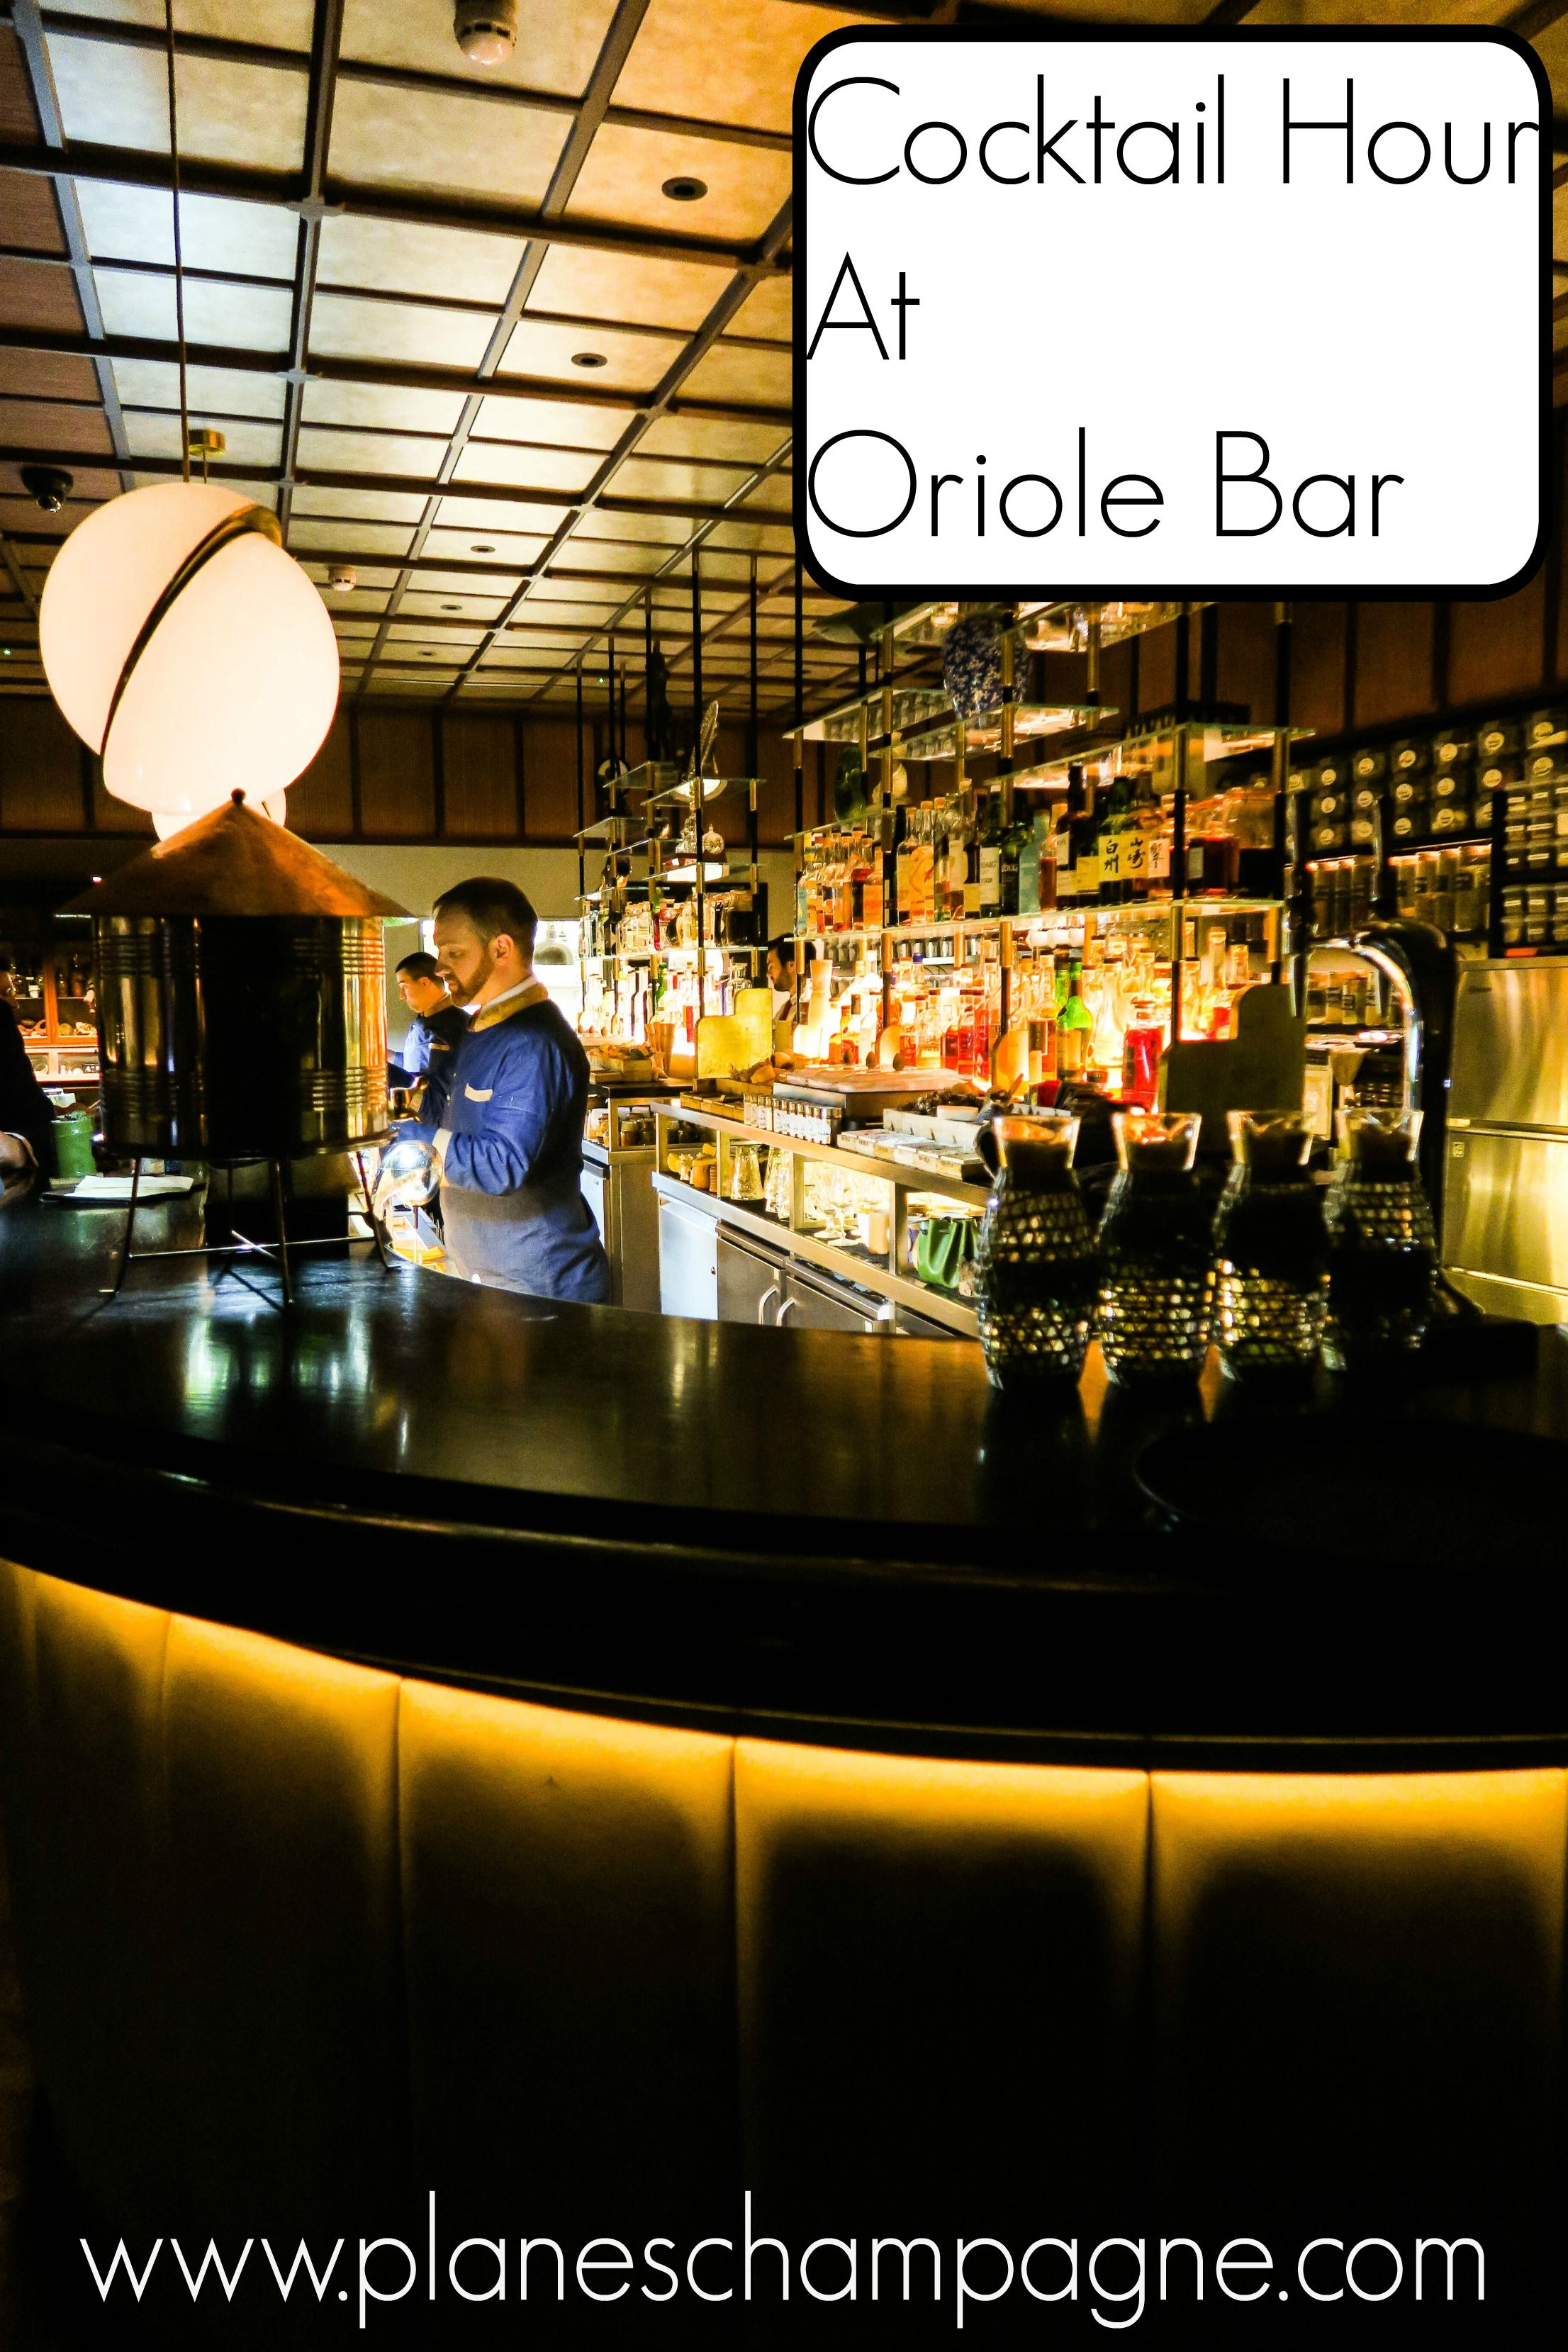 Cocktail Hour At Oriole Bar Planes & Champagne London